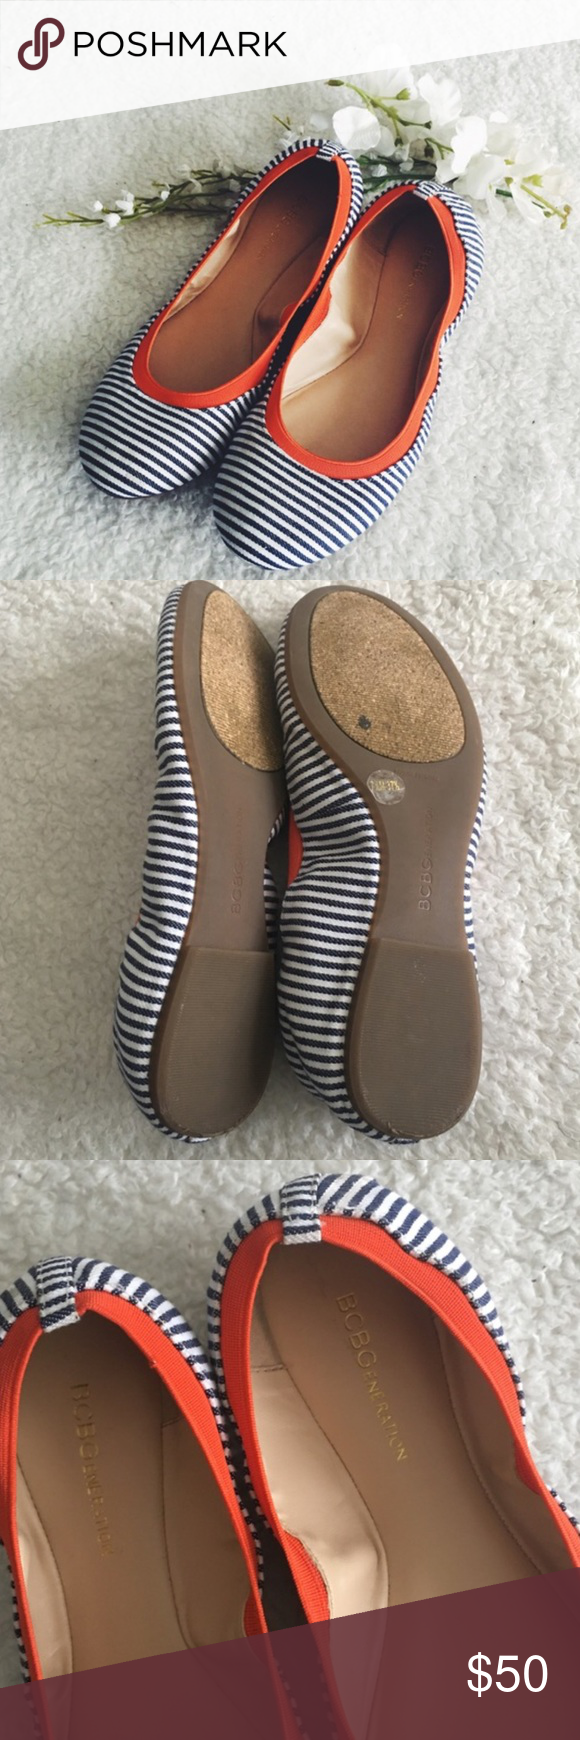 ❗️LAST CHANCE❗️BCBGeneration Striped Flats * In excellent used condition * Molds nicely to the feet * Minimal wear on outsoles  * Only imperfection is a small stain near the toe, it's pretty unnoticeable (pictured in last photo) * No trades, please 1016sw BCBGeneration Shoes Flats & Loafers